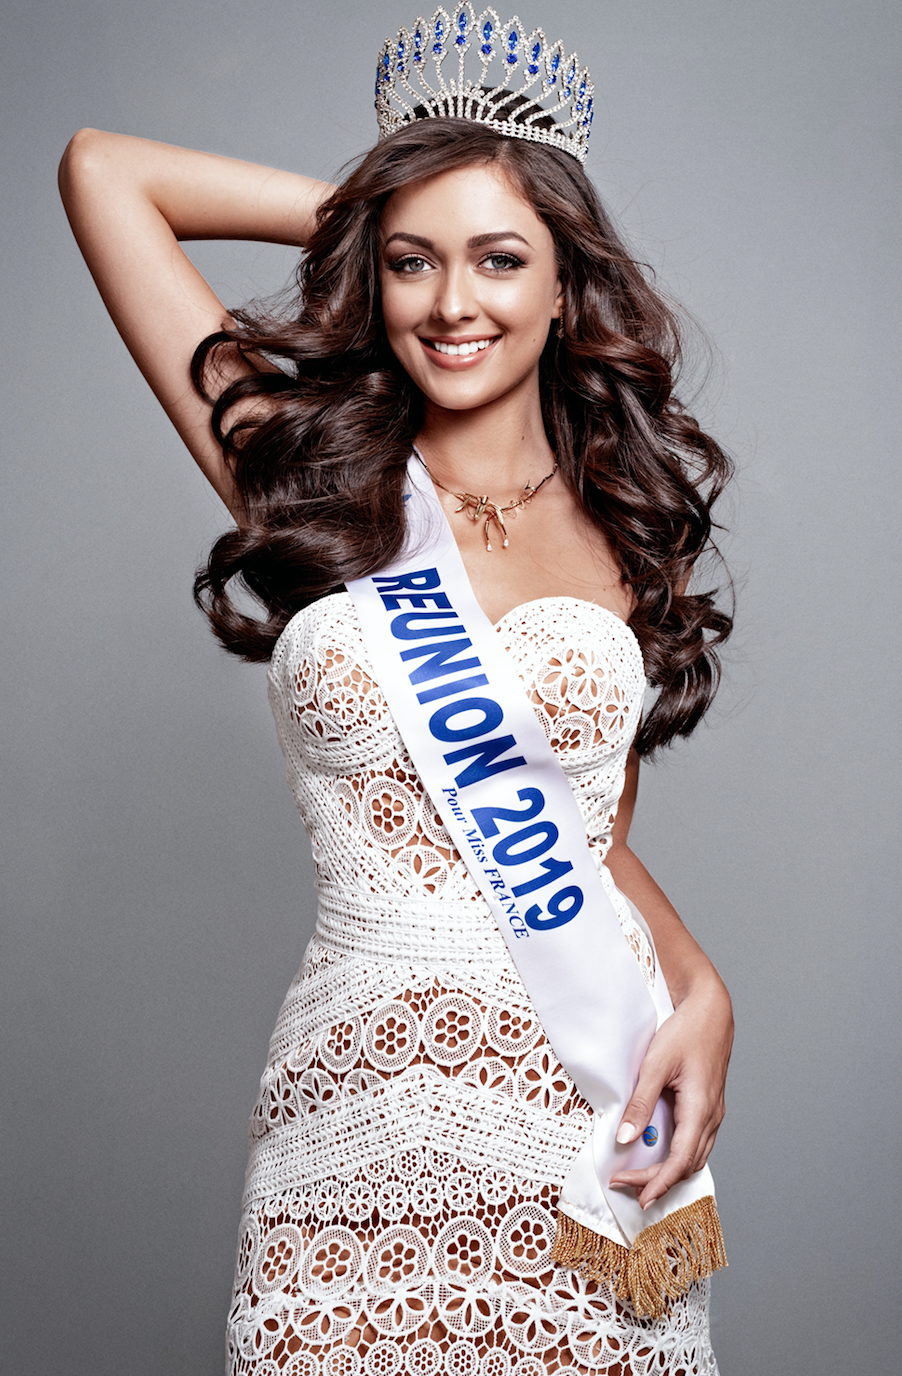 Morgane Lebon, Miss Réunion 2019 (photo Elena Iv-skaya)